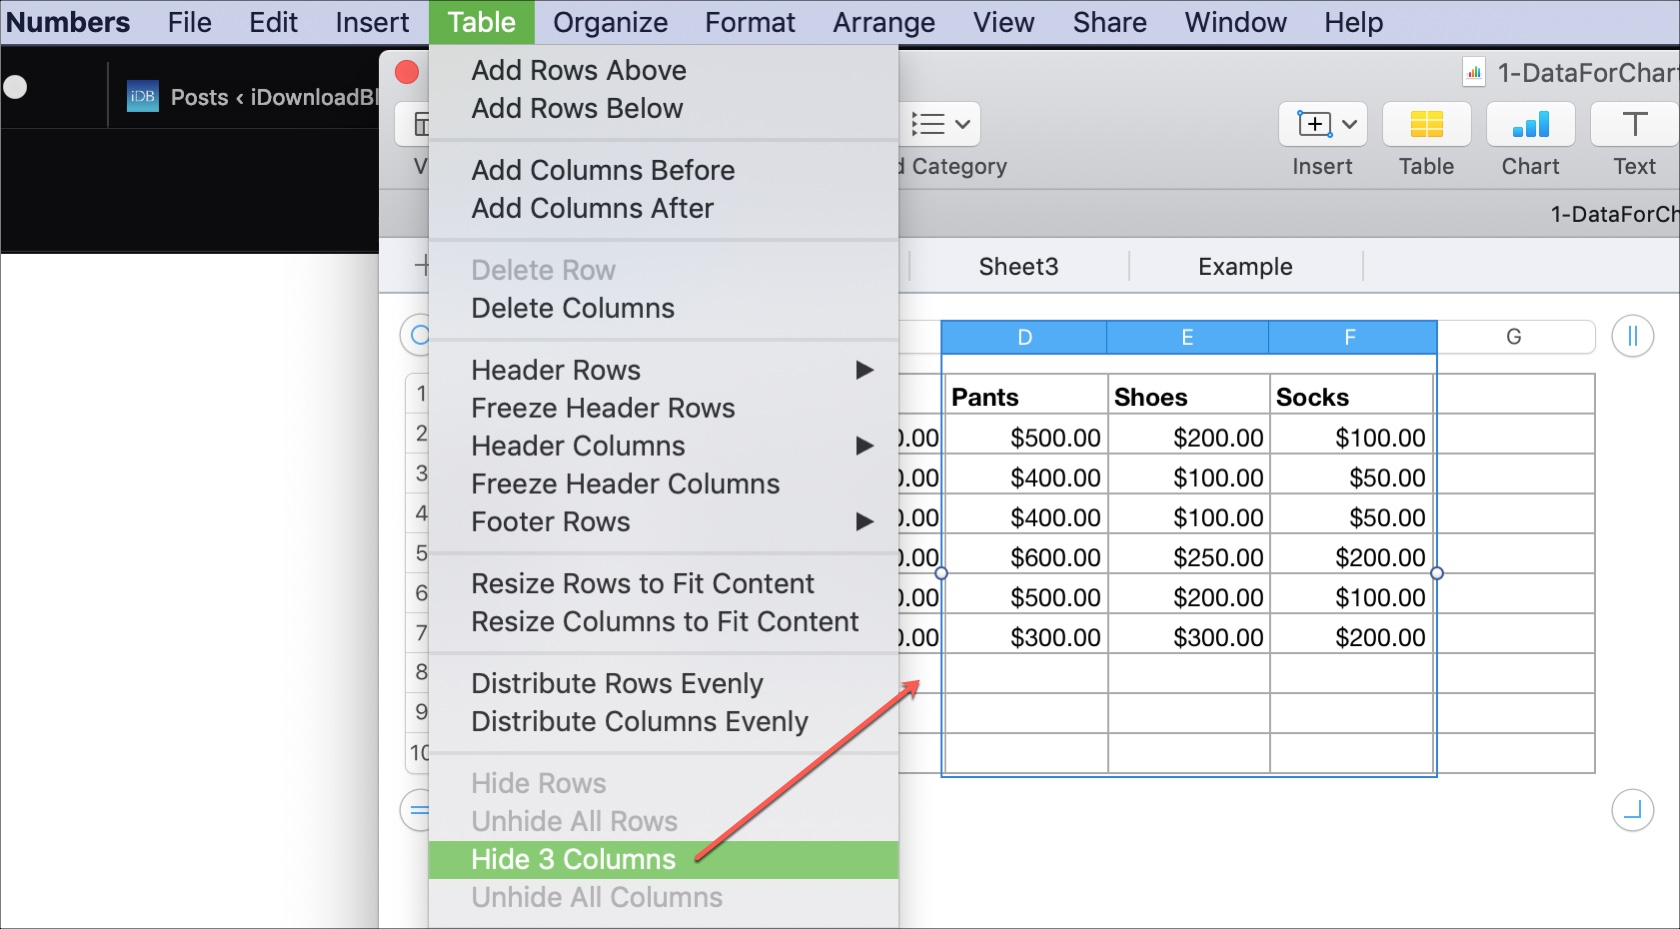 How To Add Delete Hide And Move Columns And Rows In Numbers On Mac